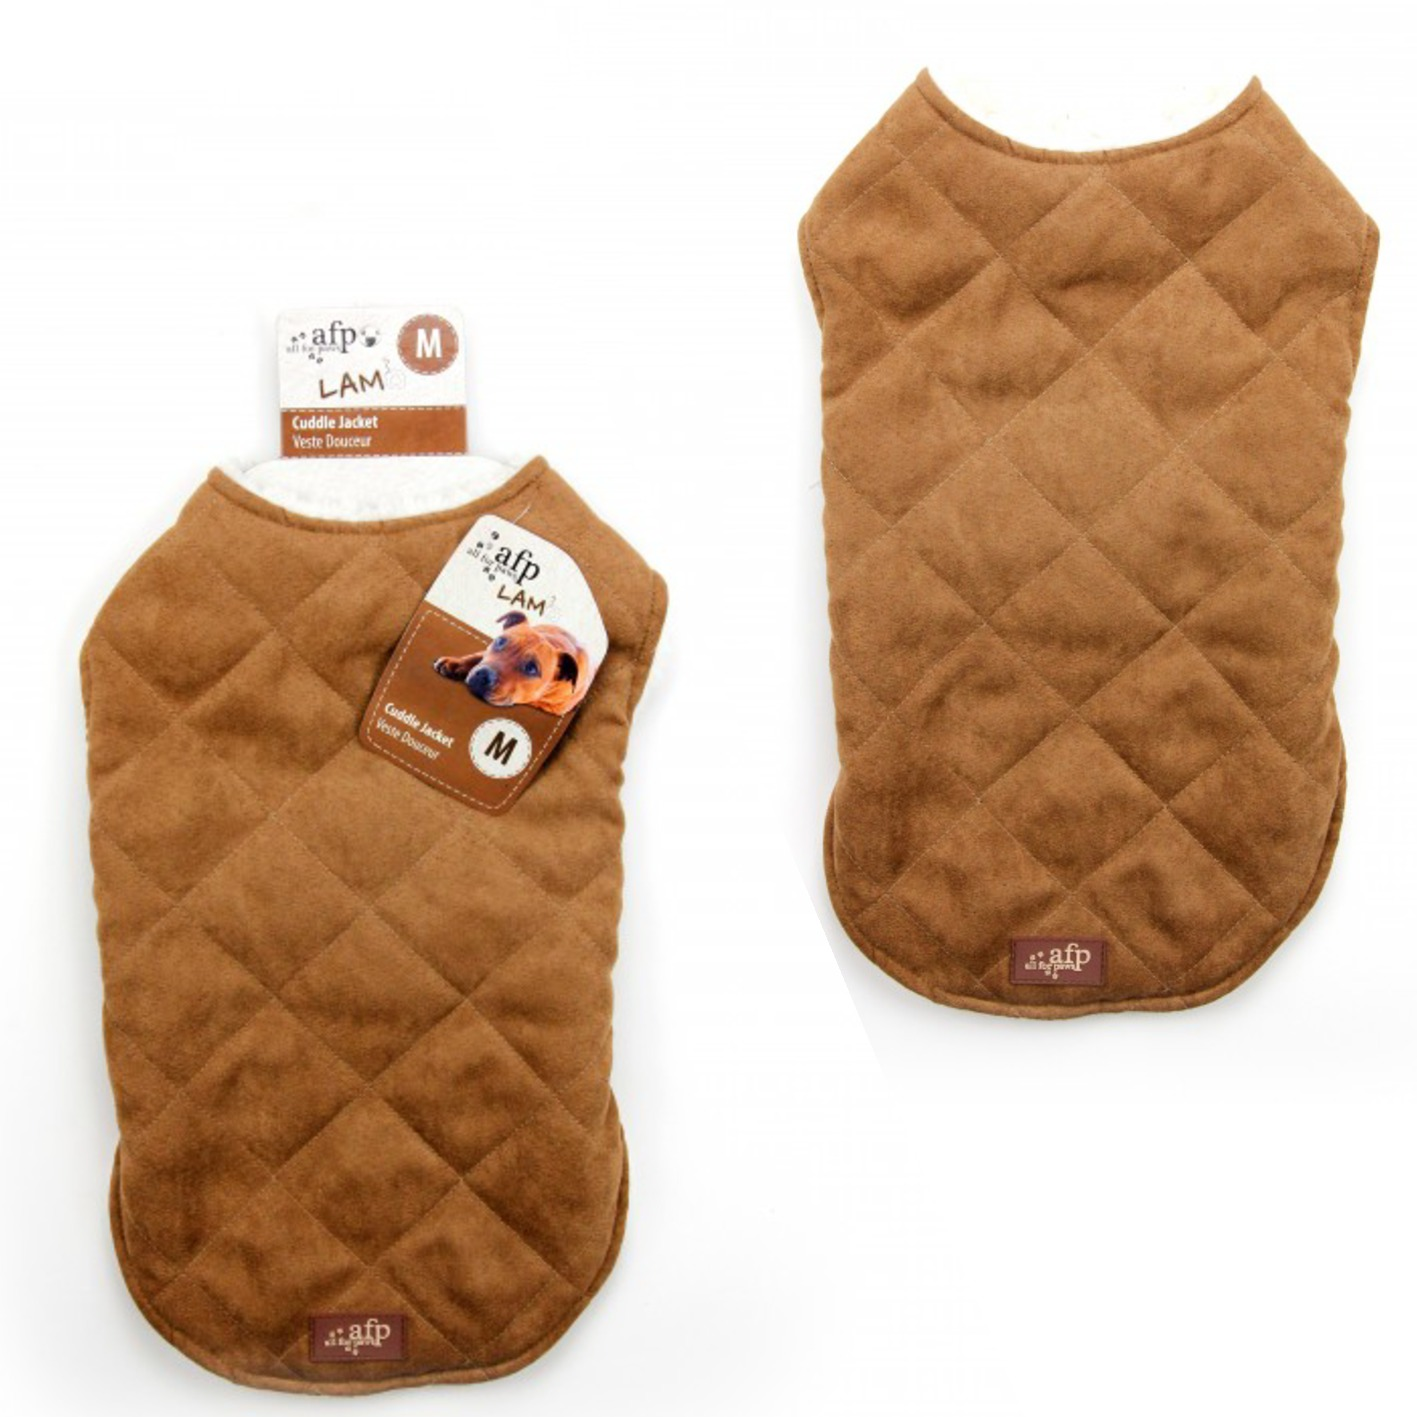 All for Paws Lamb Diamond Stitch Jacket for Dogs Tan